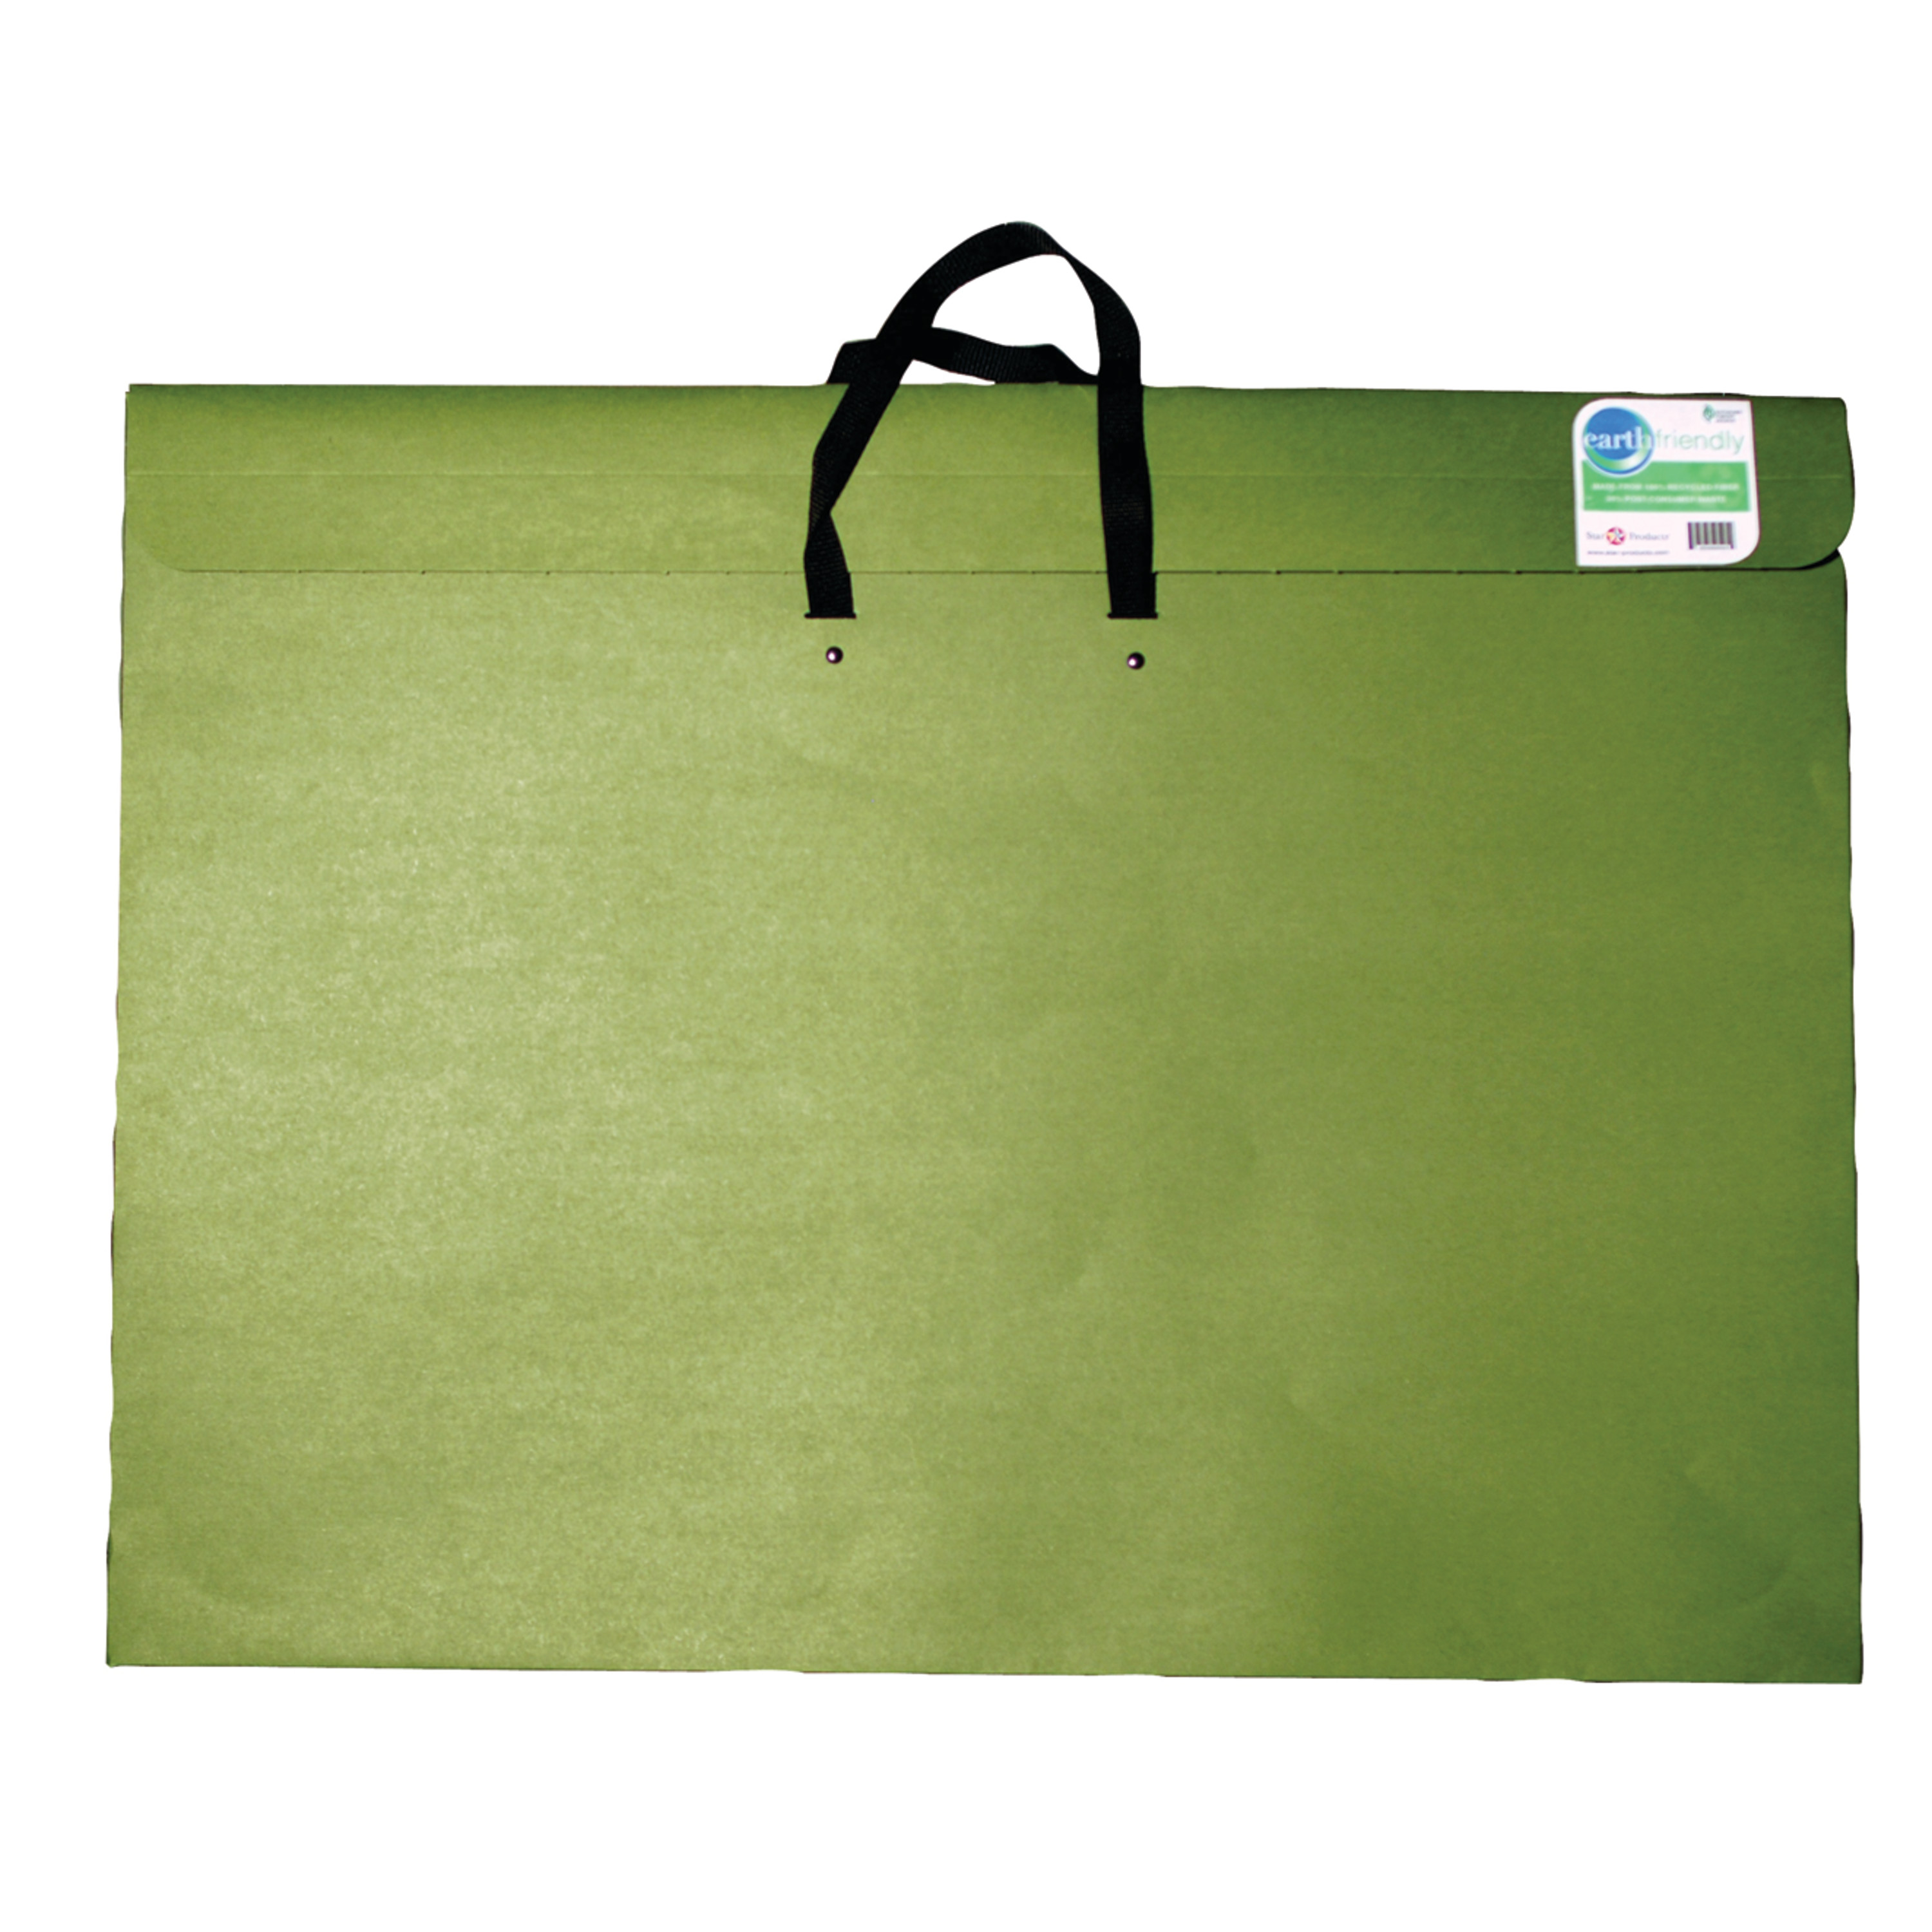 Star Products Earth Friendly Green Portfolio, 14in x 20in x 2in